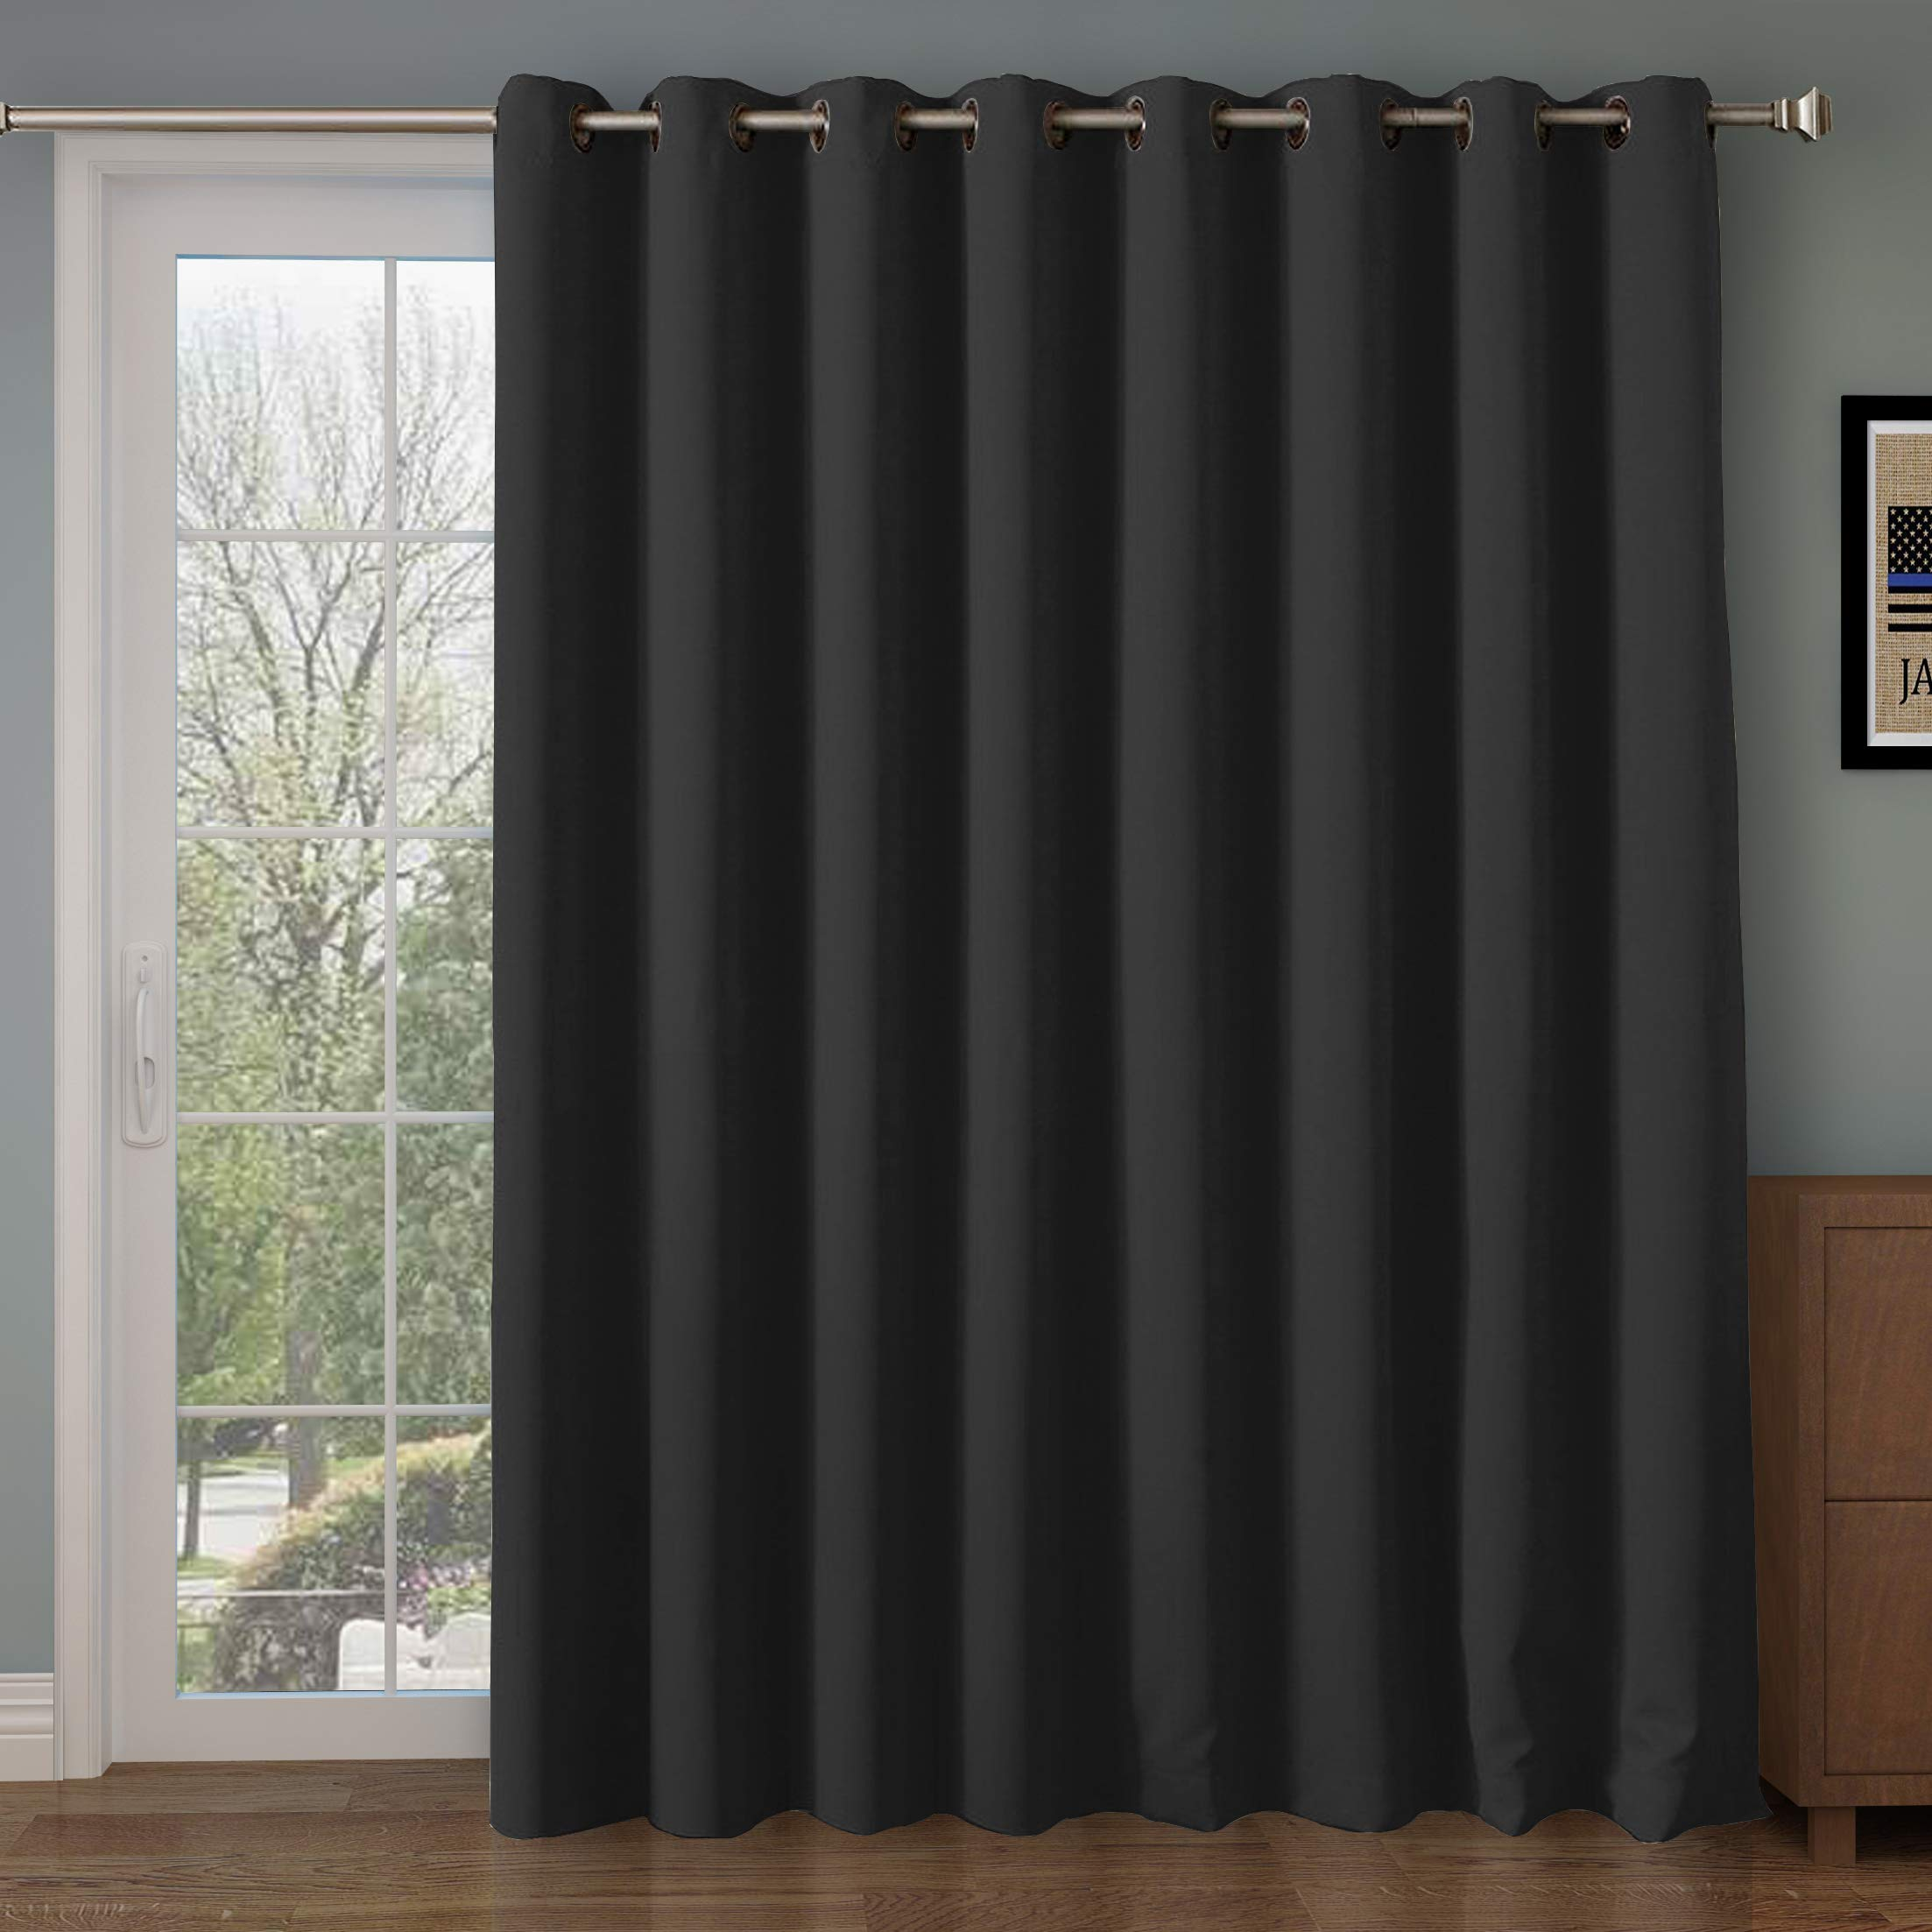 Rose Home Fashion RHF Room Divider Curtain Panel, Blackout&Thermal Curtains 108 inches Long,Extra Long and Wider Thermal Insulated Panel(100 by 108 Inches(8.5'x9')-Black) by Rose Home Fashion